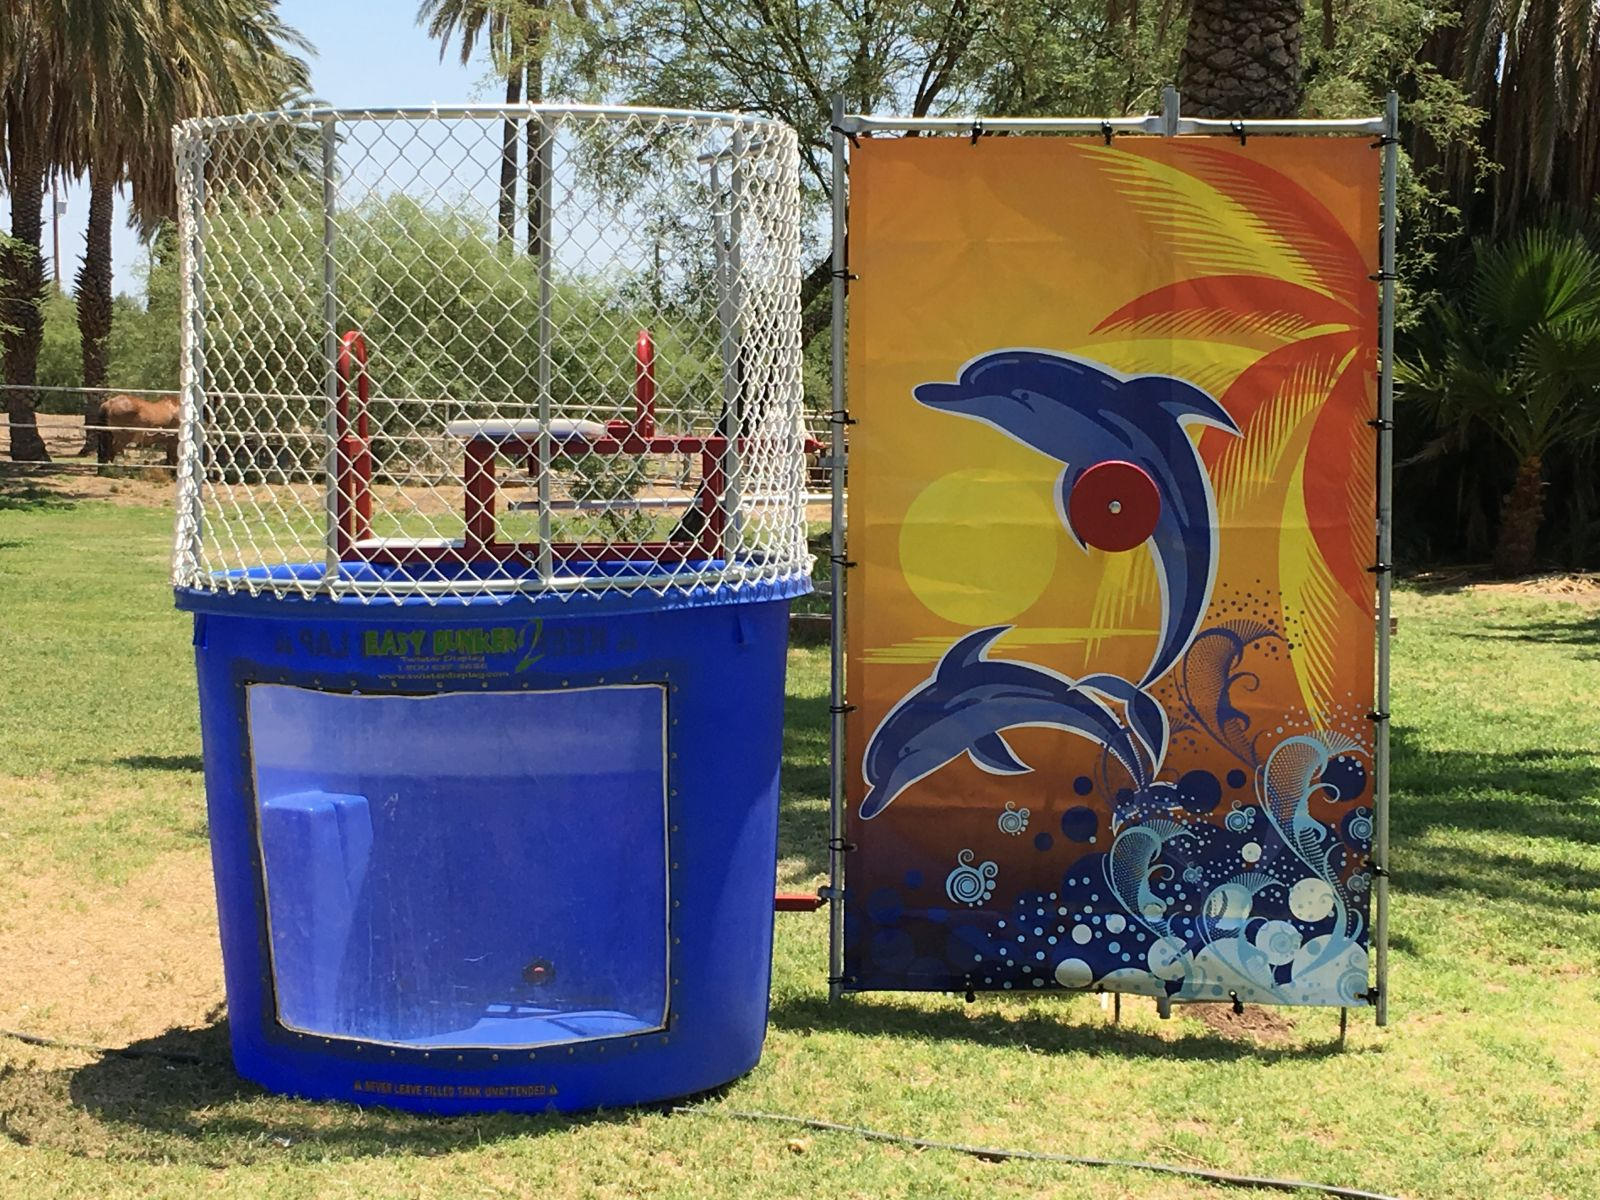 Rent a Dunk Tank with a Window